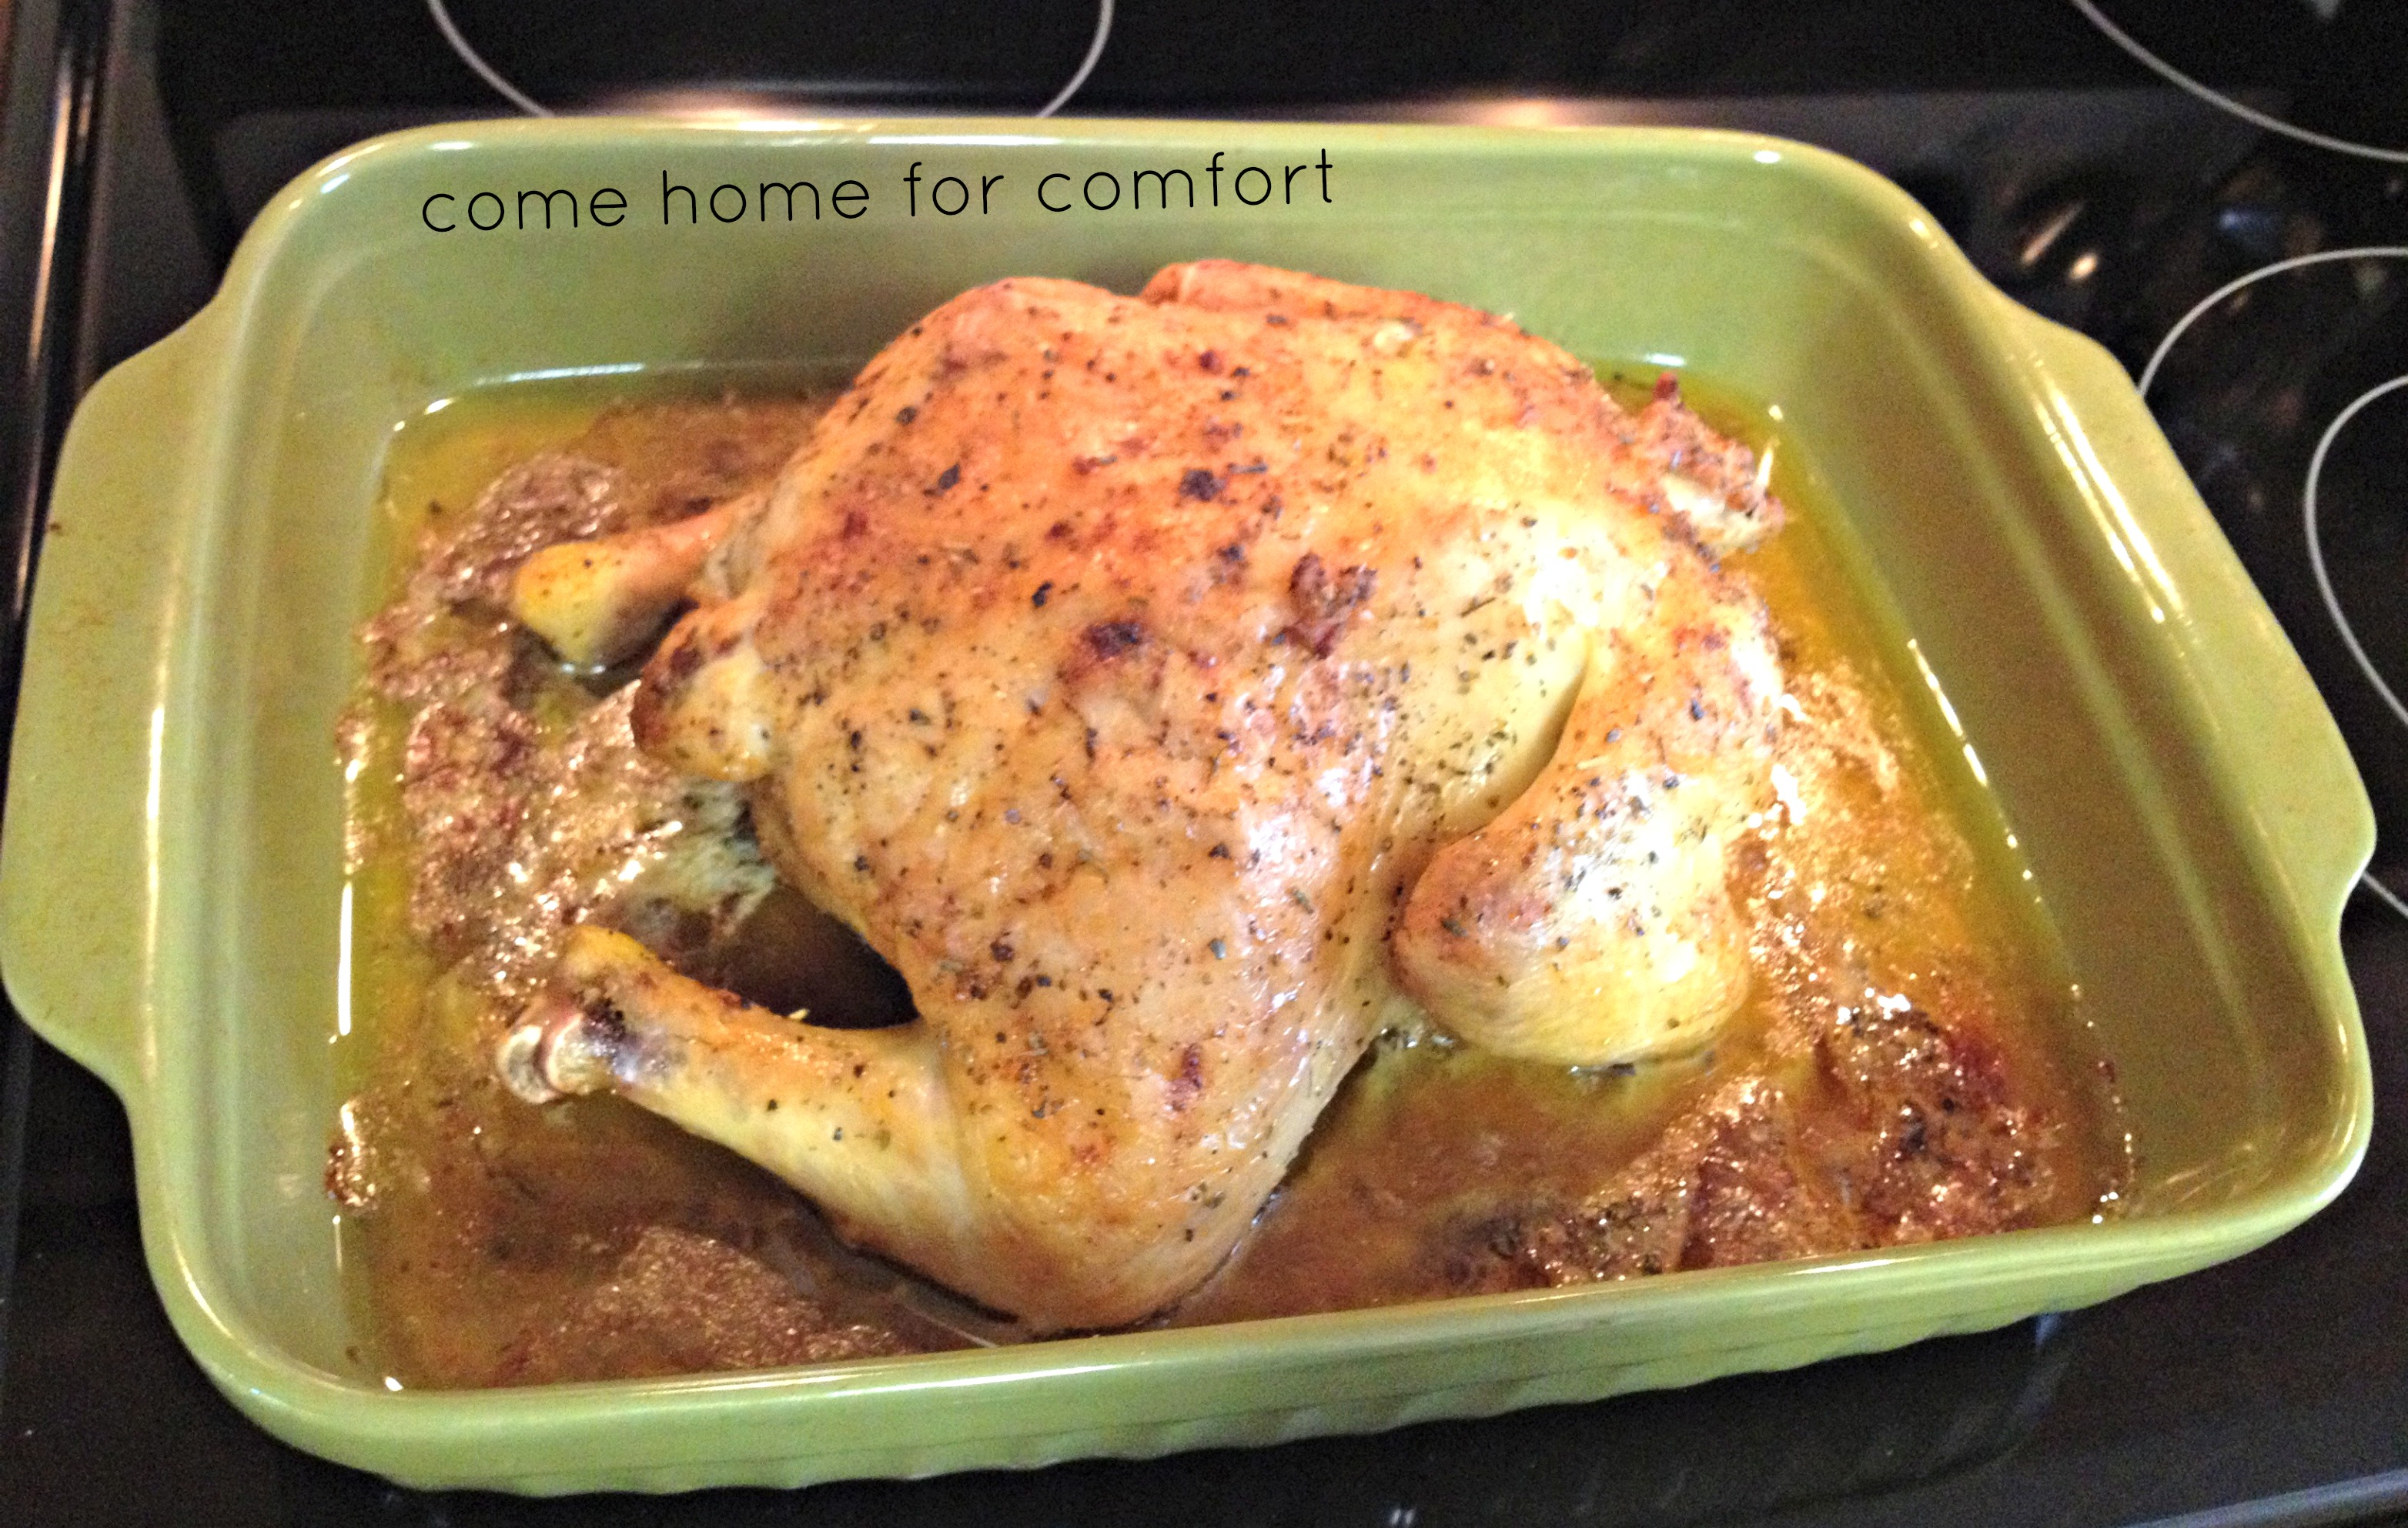 How to Make Roast Chicken | Come Home For Comfort